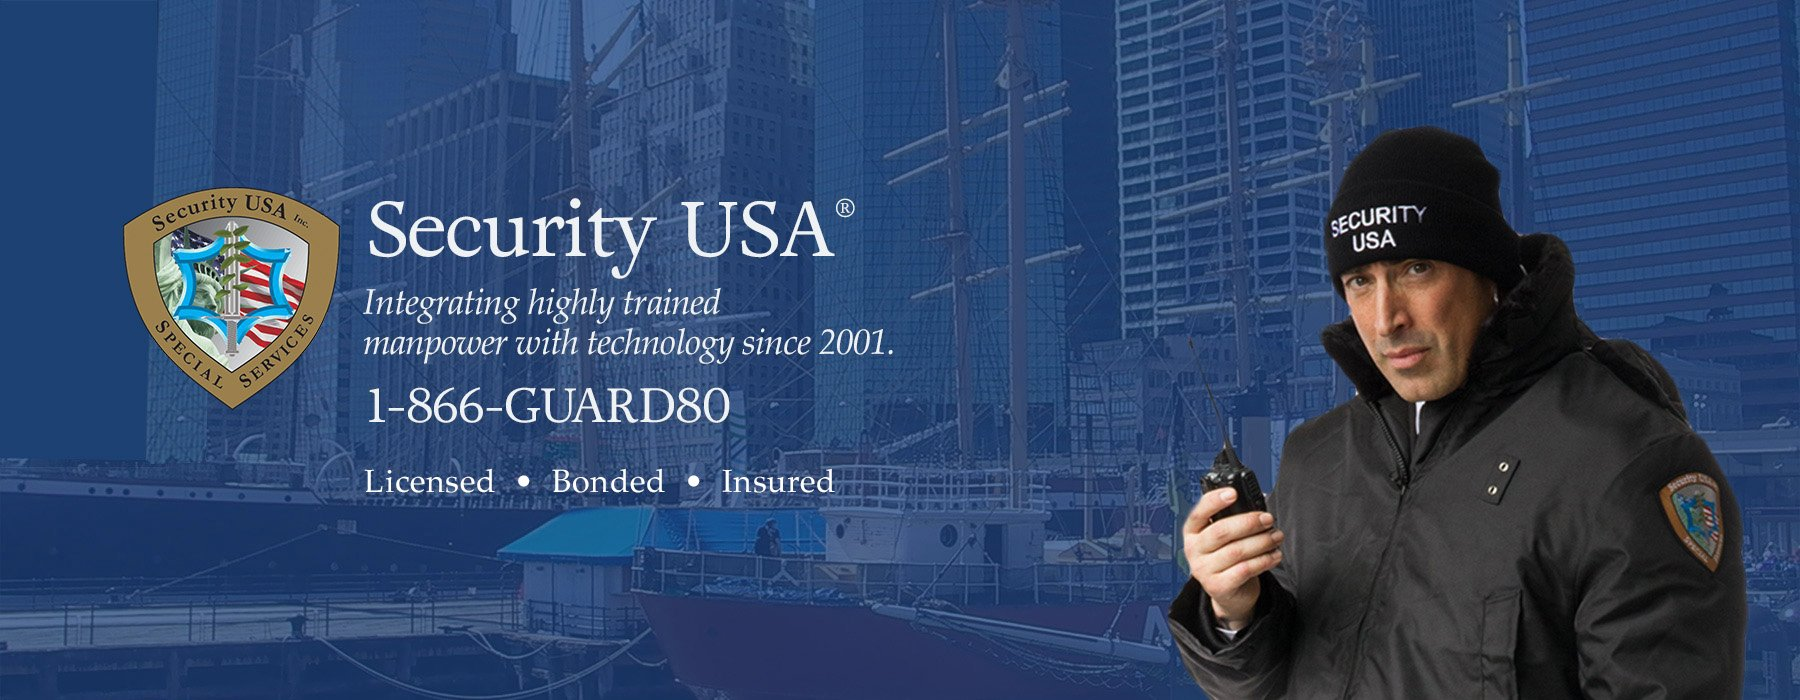 Corporate Security Jobs Nyc